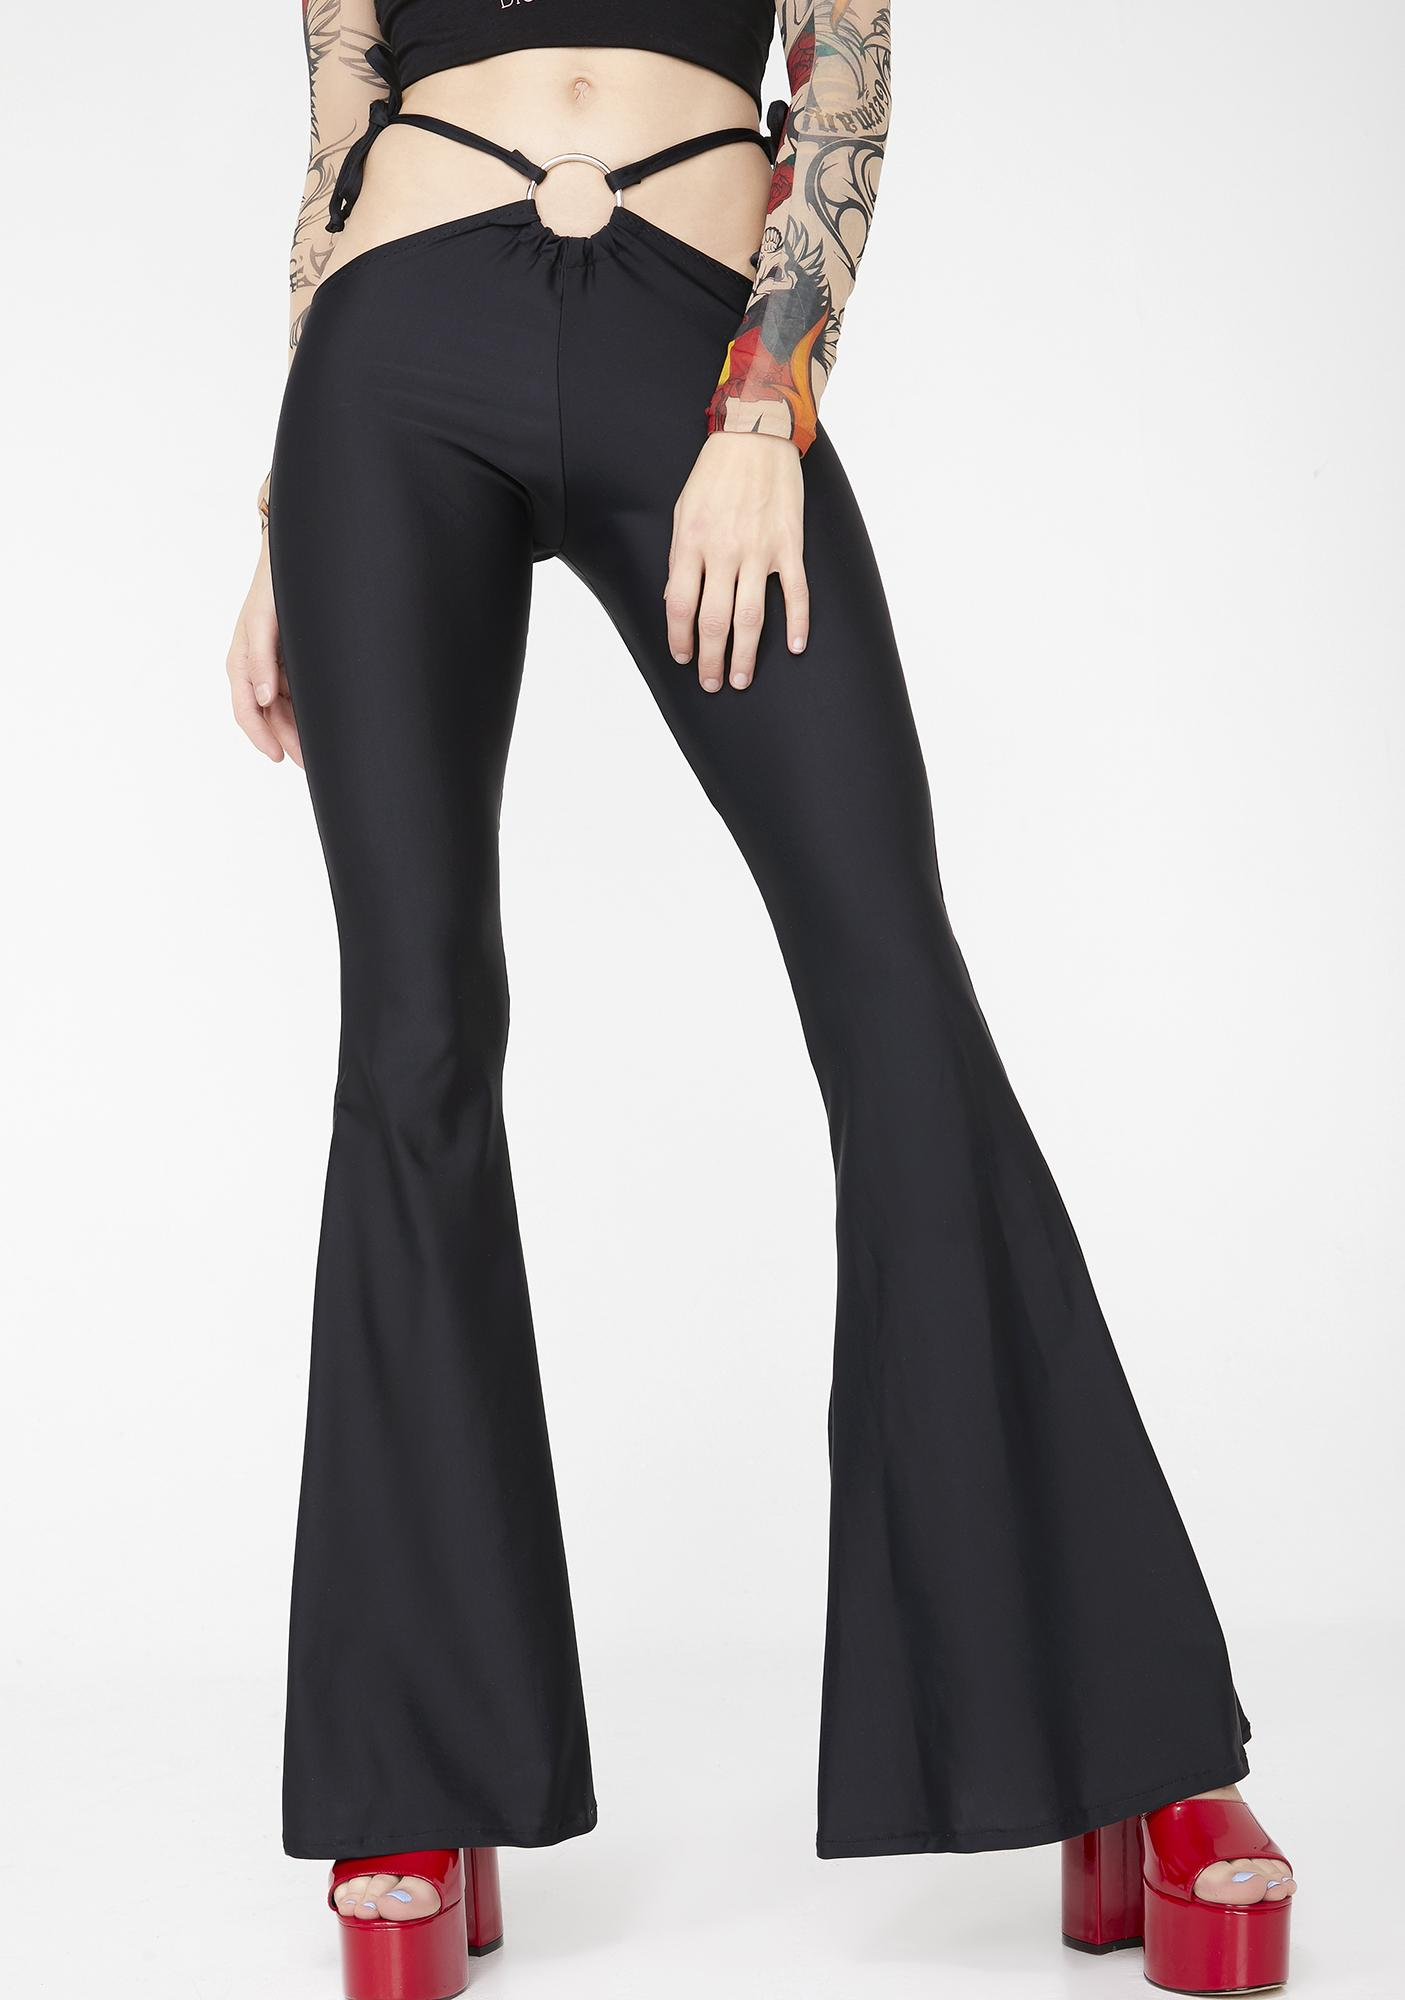 Babydol Clothing Black Christina Flares